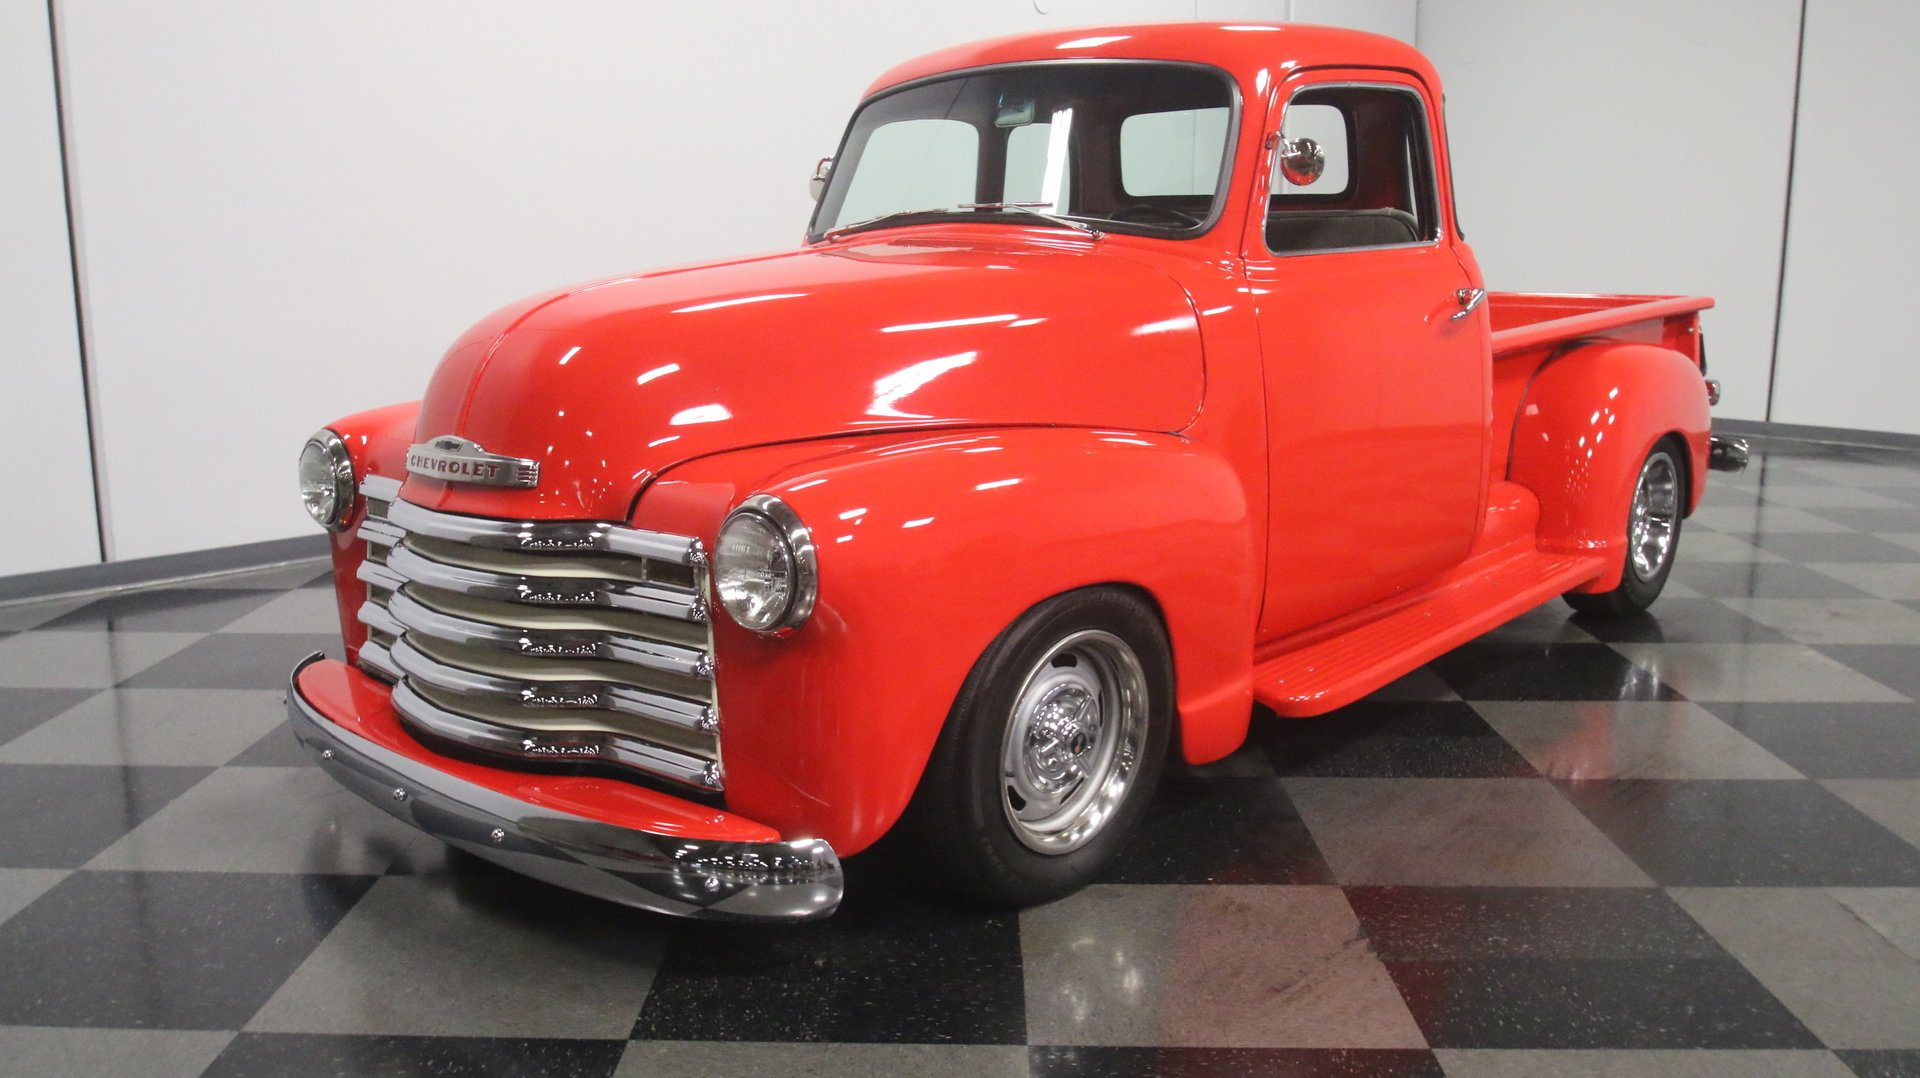 1951 Chevrolet 3100 Streetside Classics The Nations Trusted Chevy Pickup Truck For Sale Spincar View Play Video 360